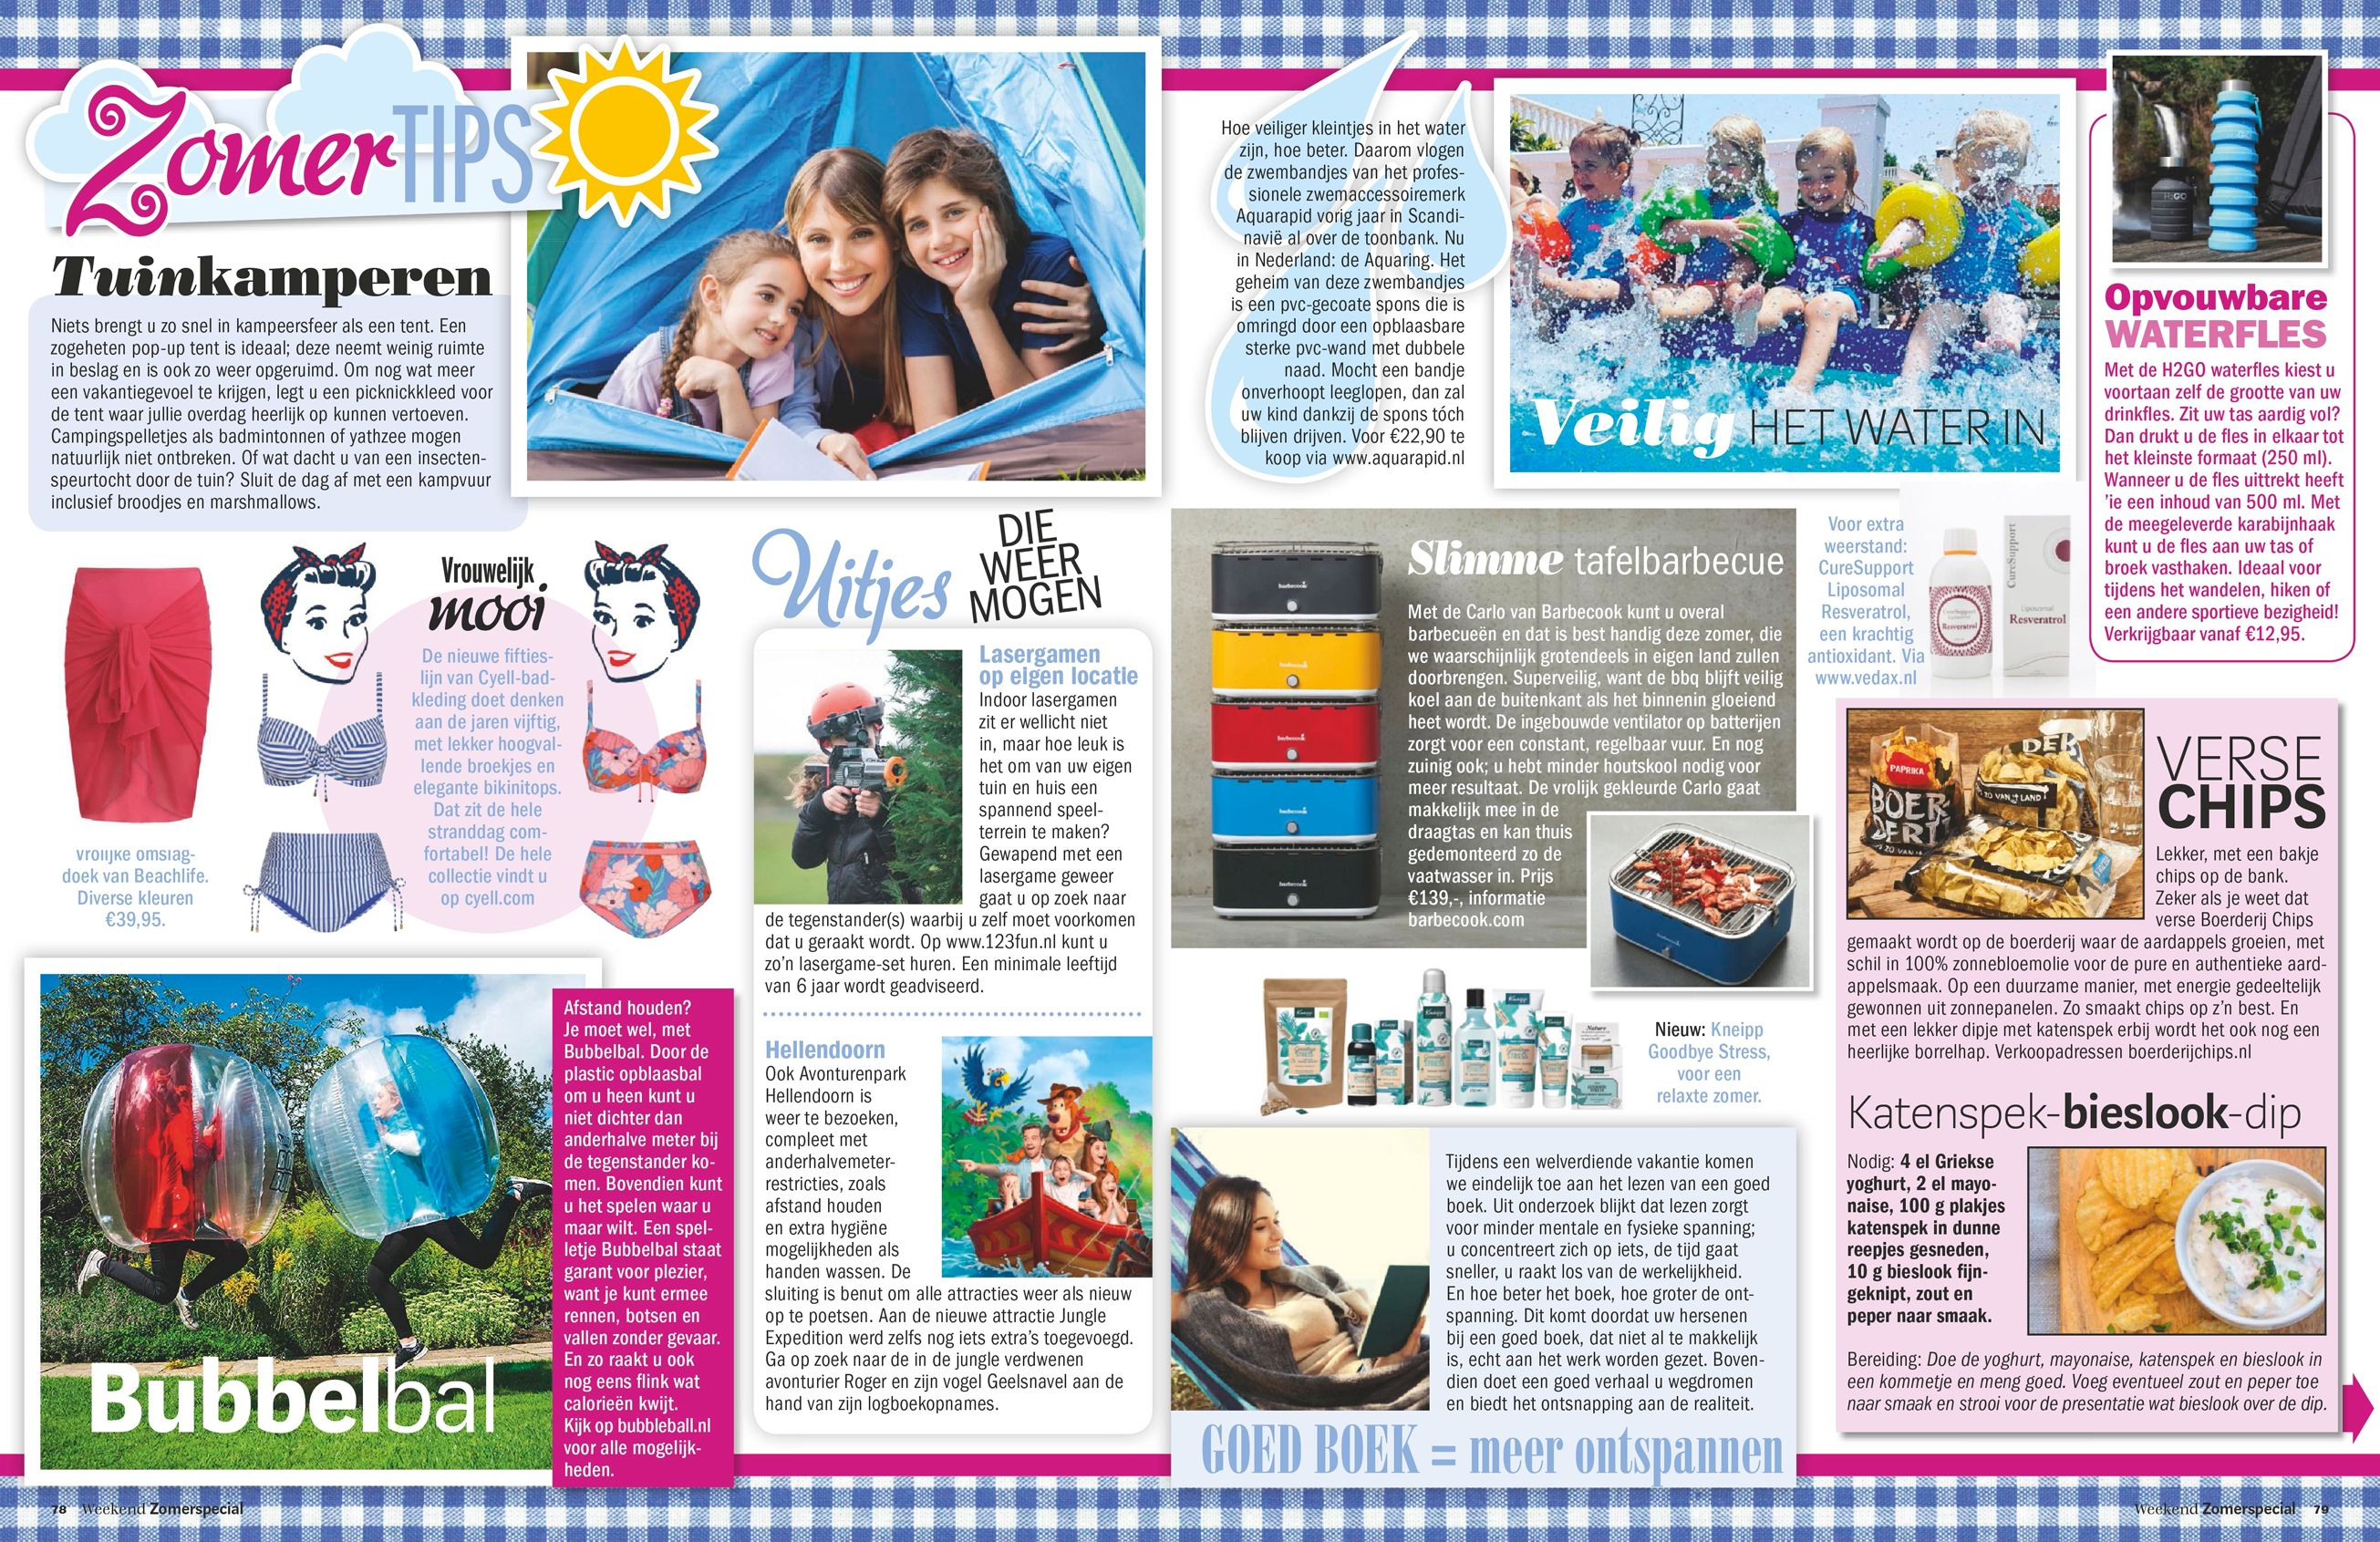 images/Mediapublicaties-PDF/PAGE_Weekend_special_zomer_2020.jpeg